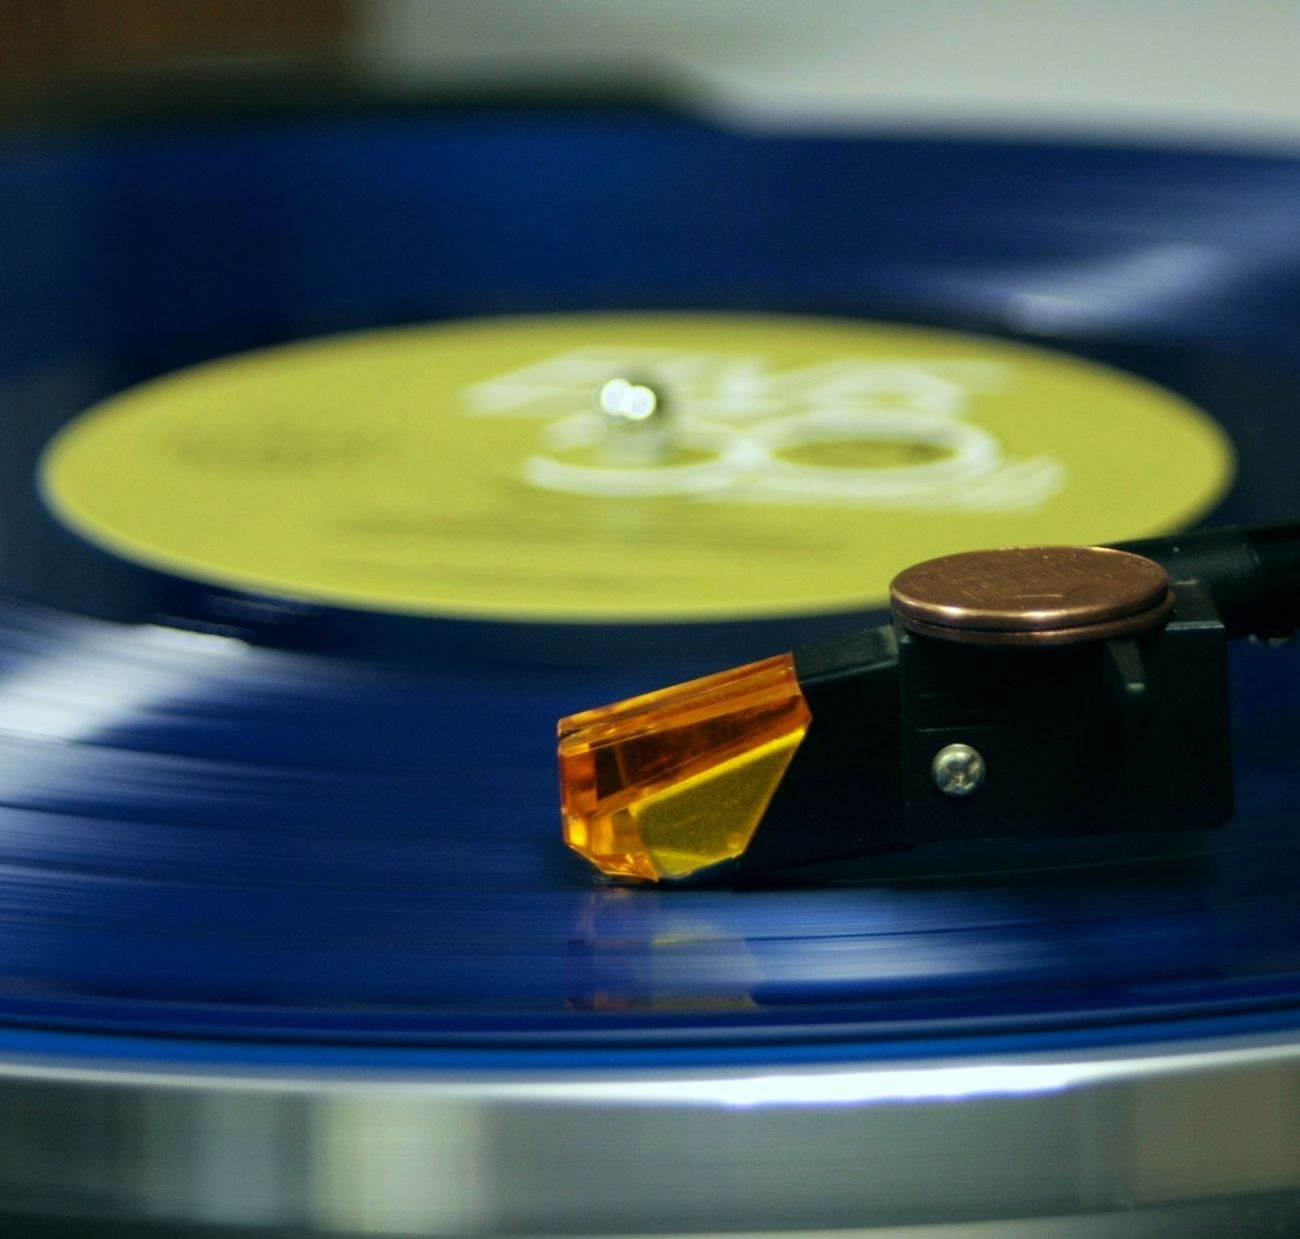 Tadaa Community Vinyl Elvis Presley Pop & Hiss Blue Elvis Presley record with an orange stylus